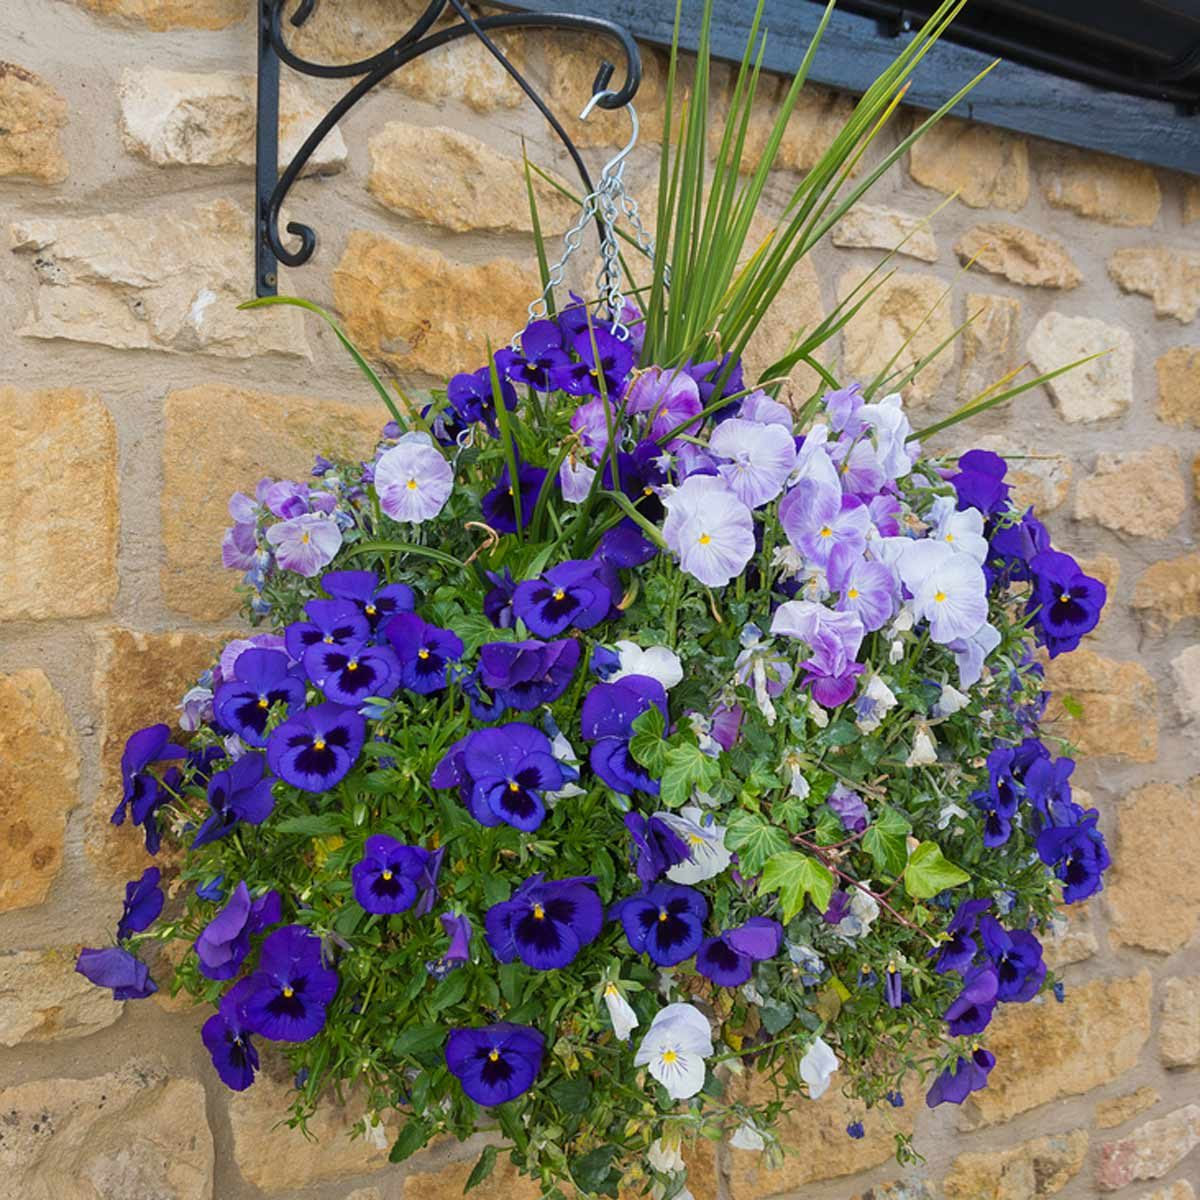 shutterstock_286520357 hanging planter flower basket pansies